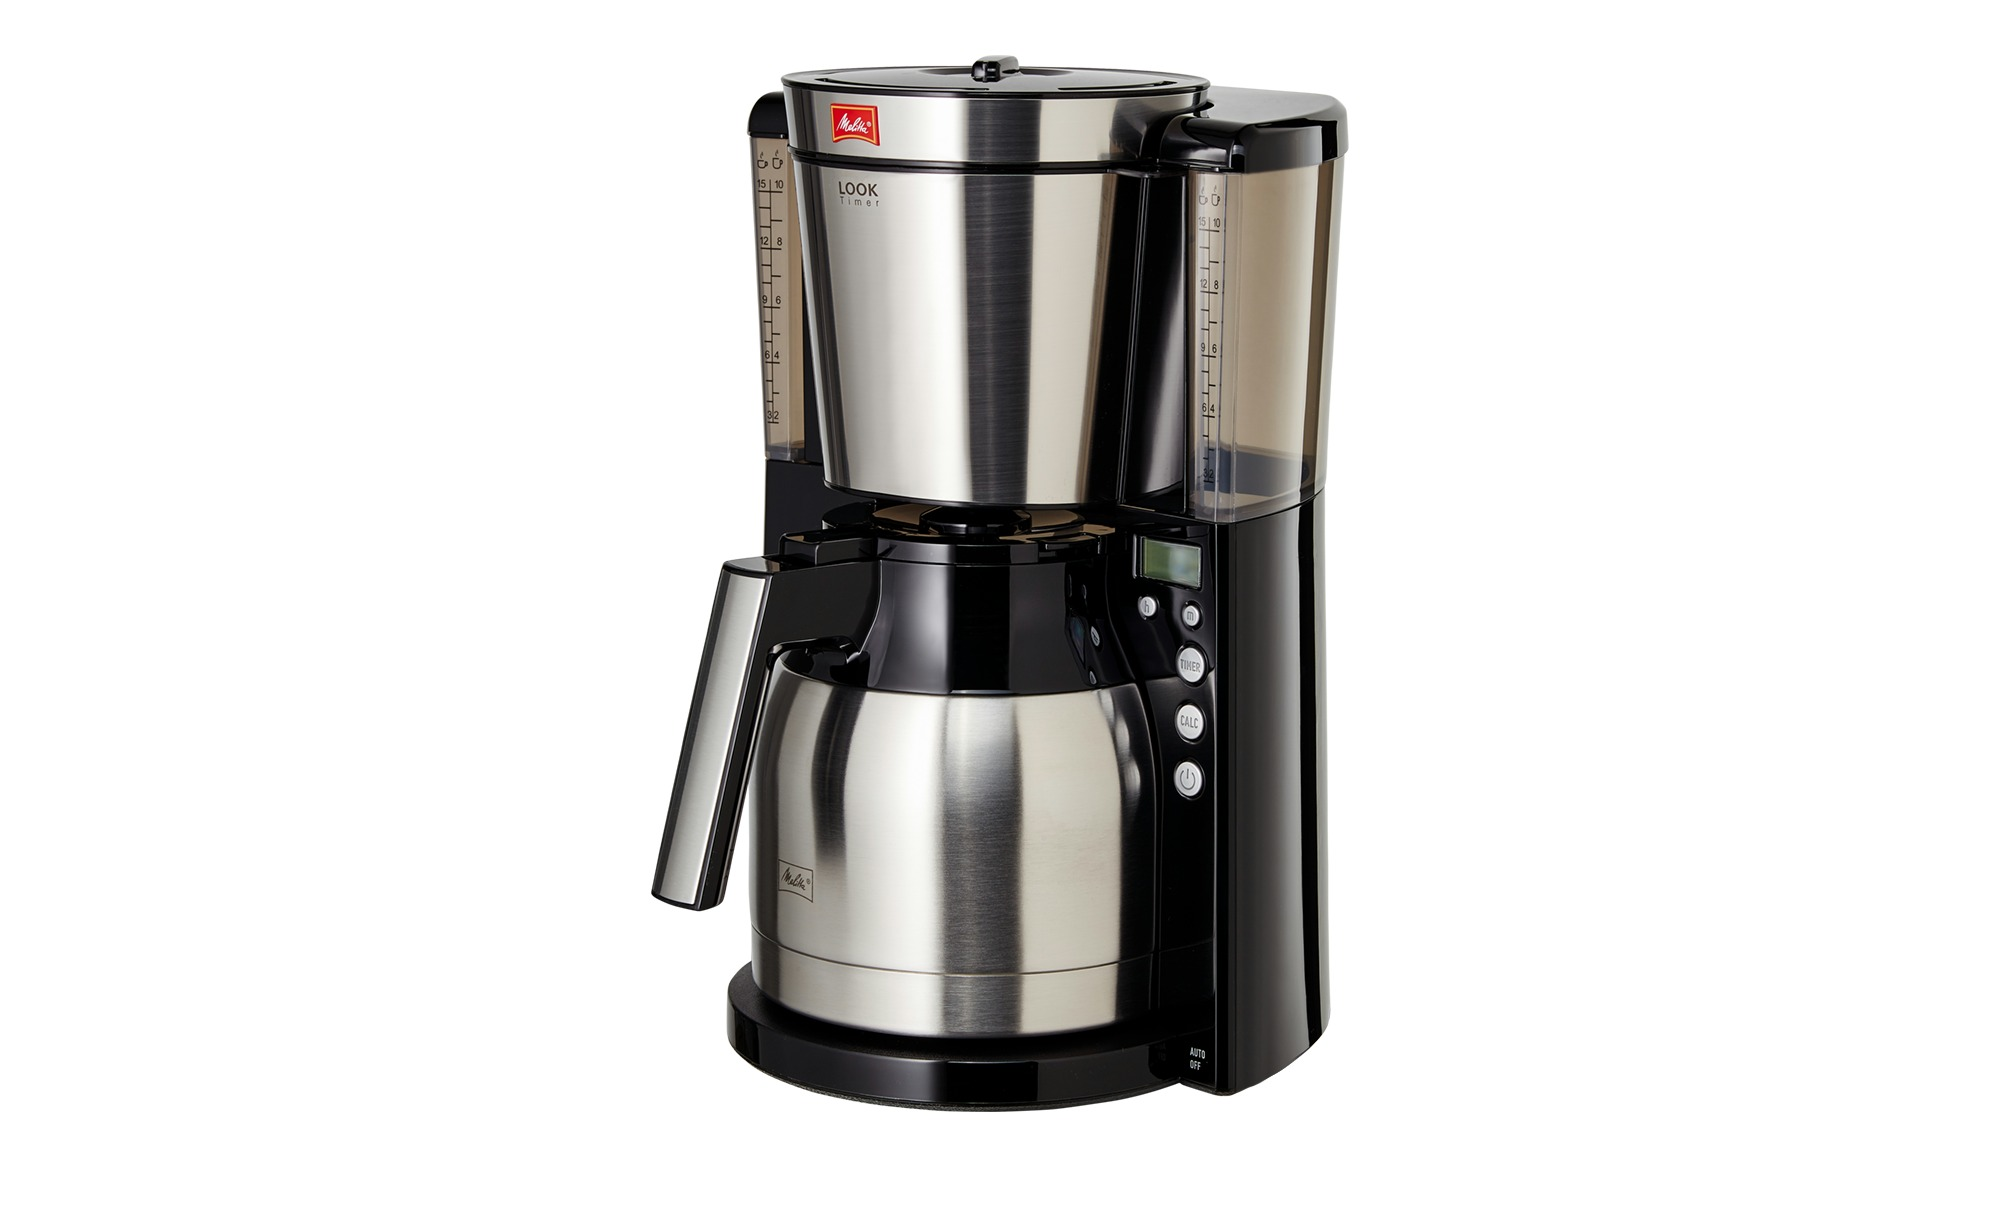 Melitta Thermo Kaffeeautomat 1011 16 Look Iv Therm Timer